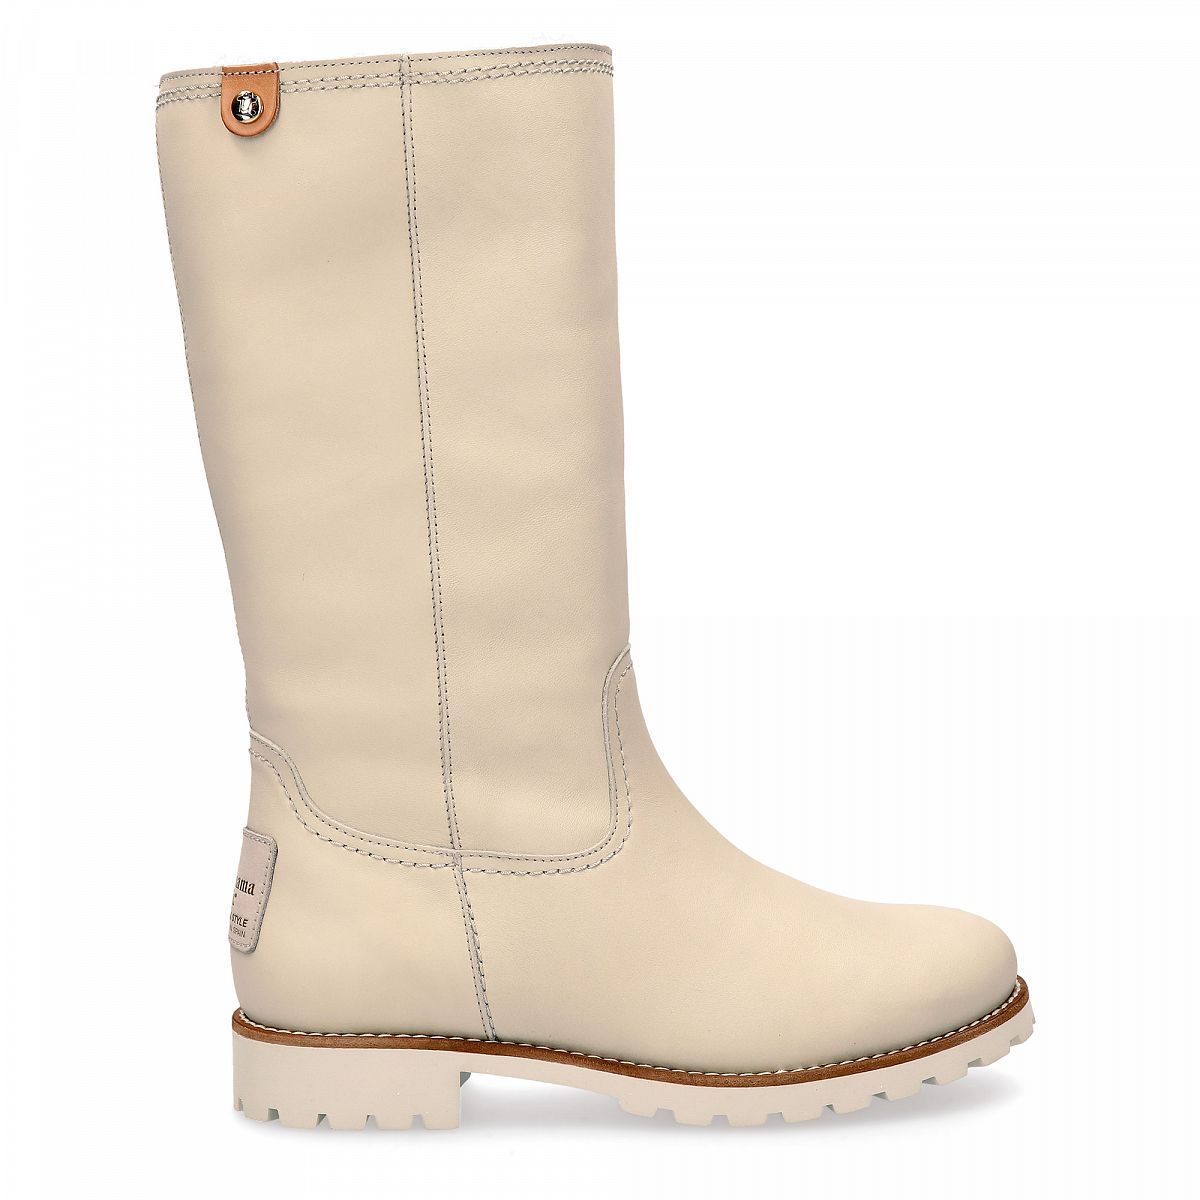 f9fabaa830f8 Women s boot BAMBINA IGLOO TRAVELLING ecru